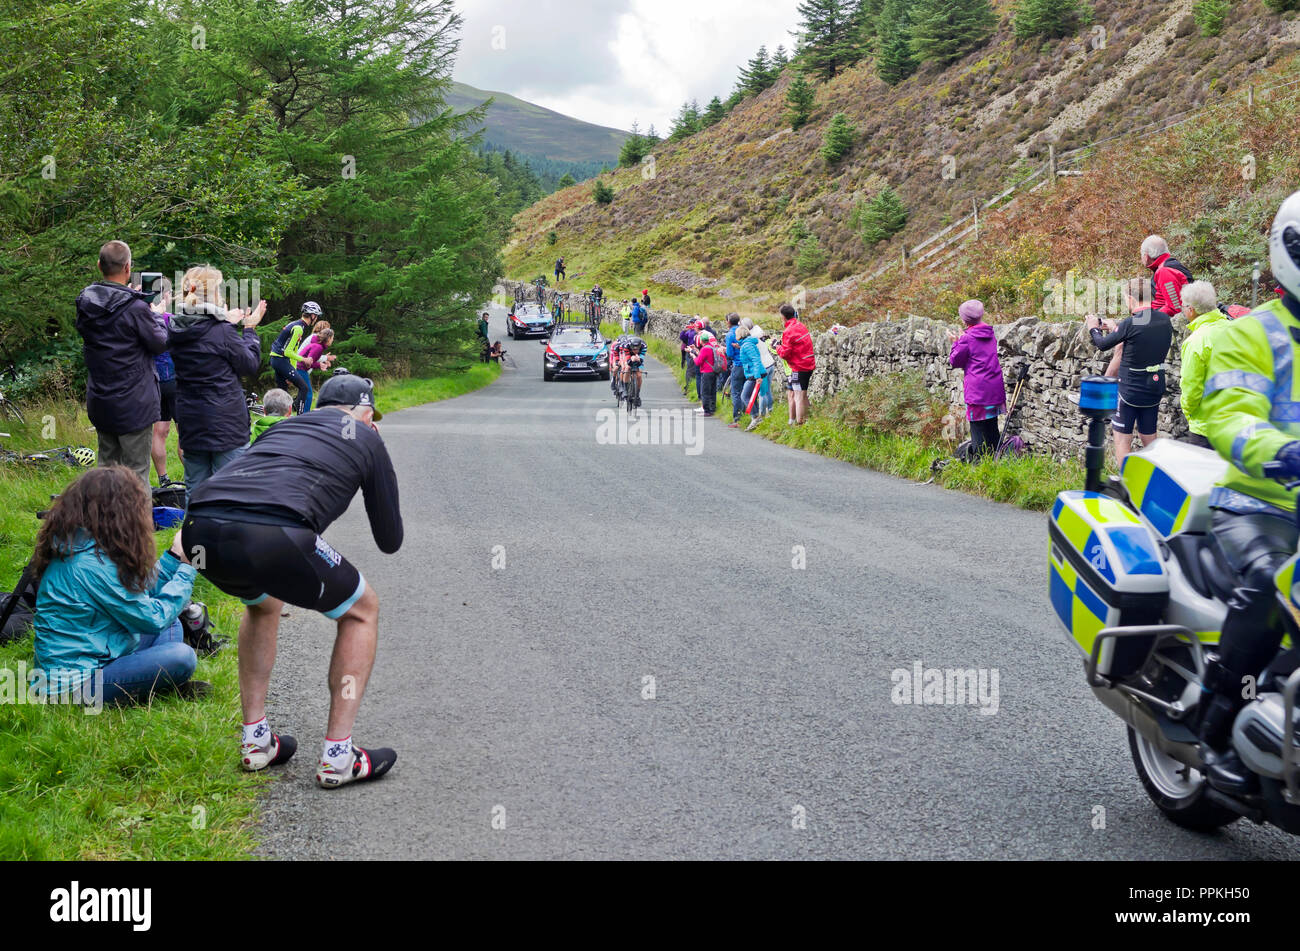 Stage 5 Tour of Britain 2018,Team Time Trial Whinlatter Pass. Cyclists and other spectators applaud and take photos as team Madison Genesis approach. - Stock Image